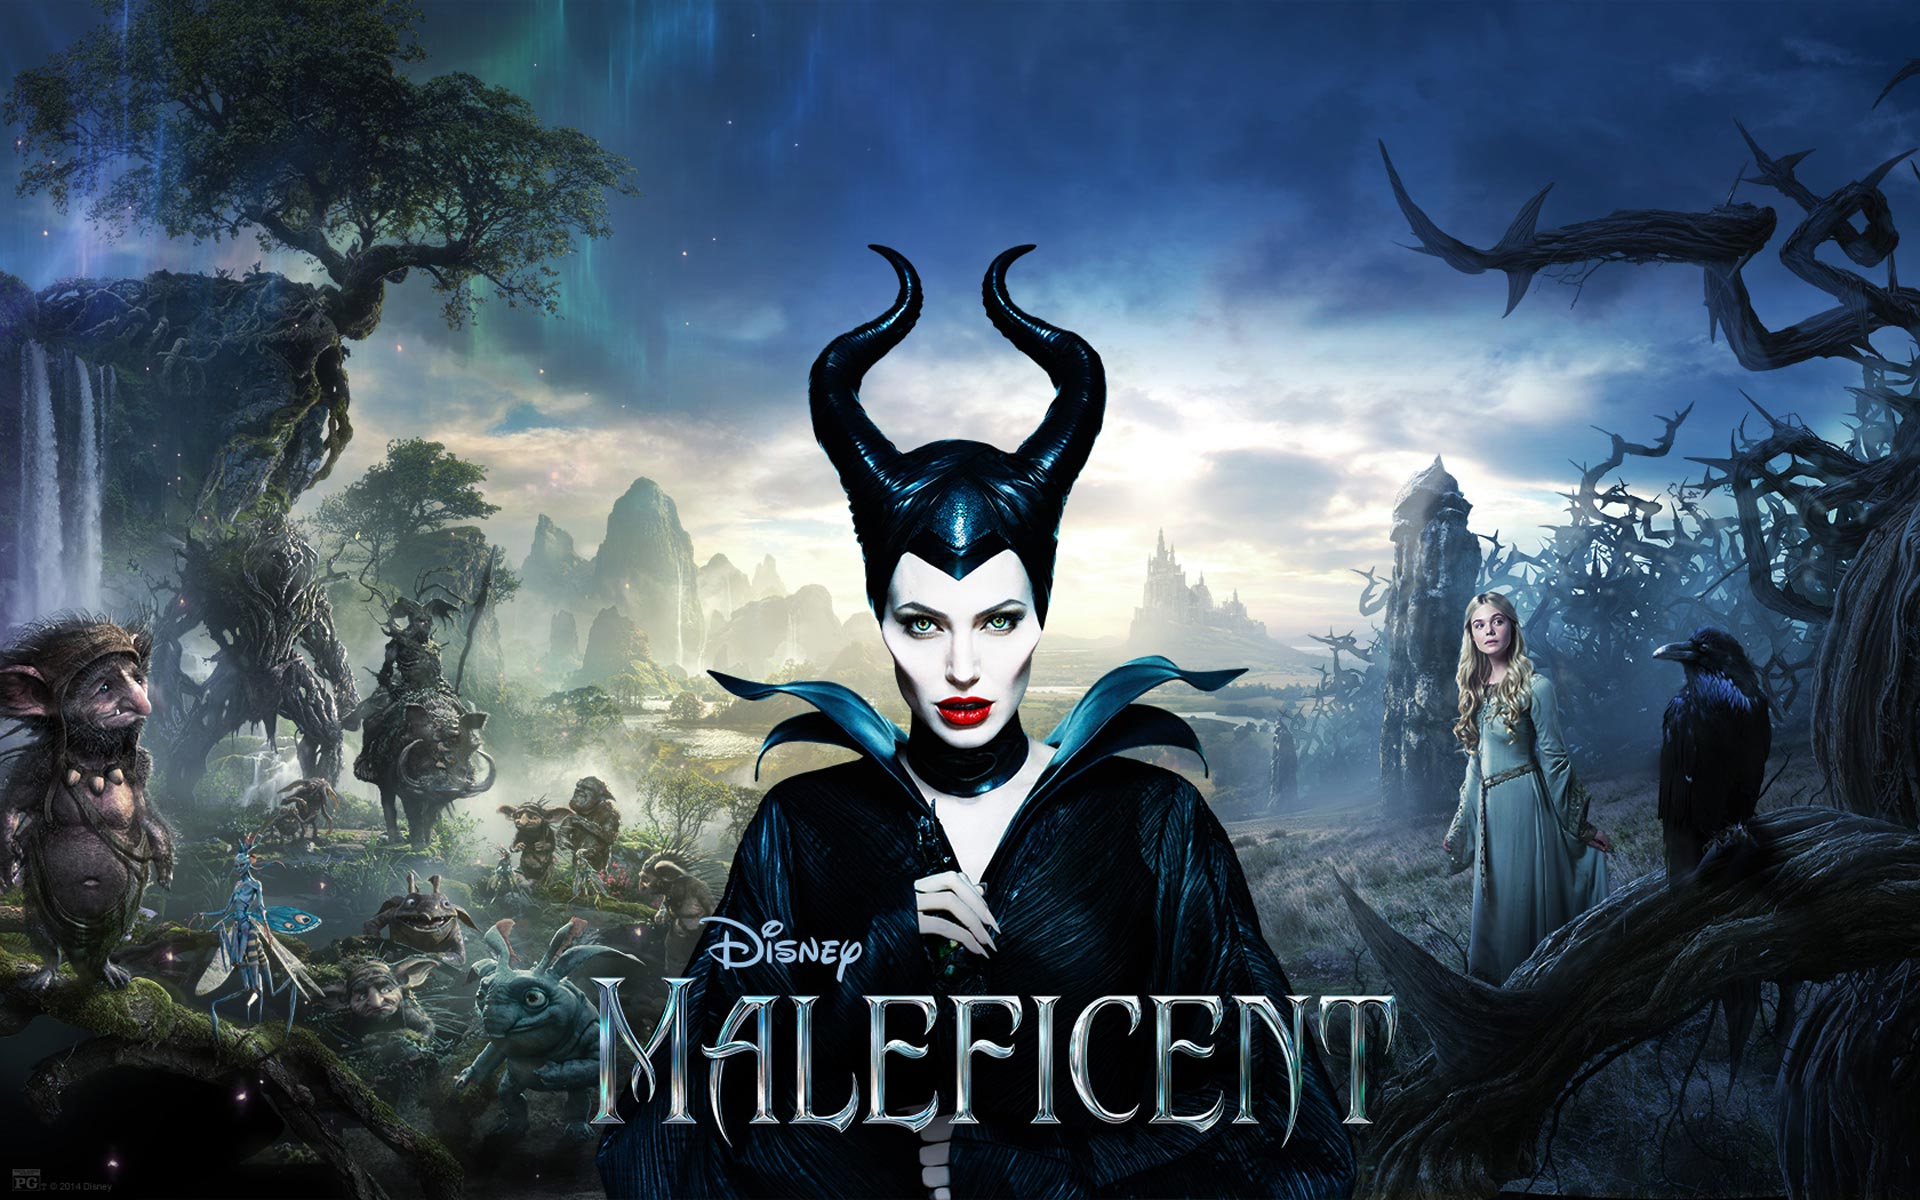 maleficent movie wallpaper hd maleficent movie hd wallpaper background angelina jolie 10 Stunning New MALEFICENT Movie